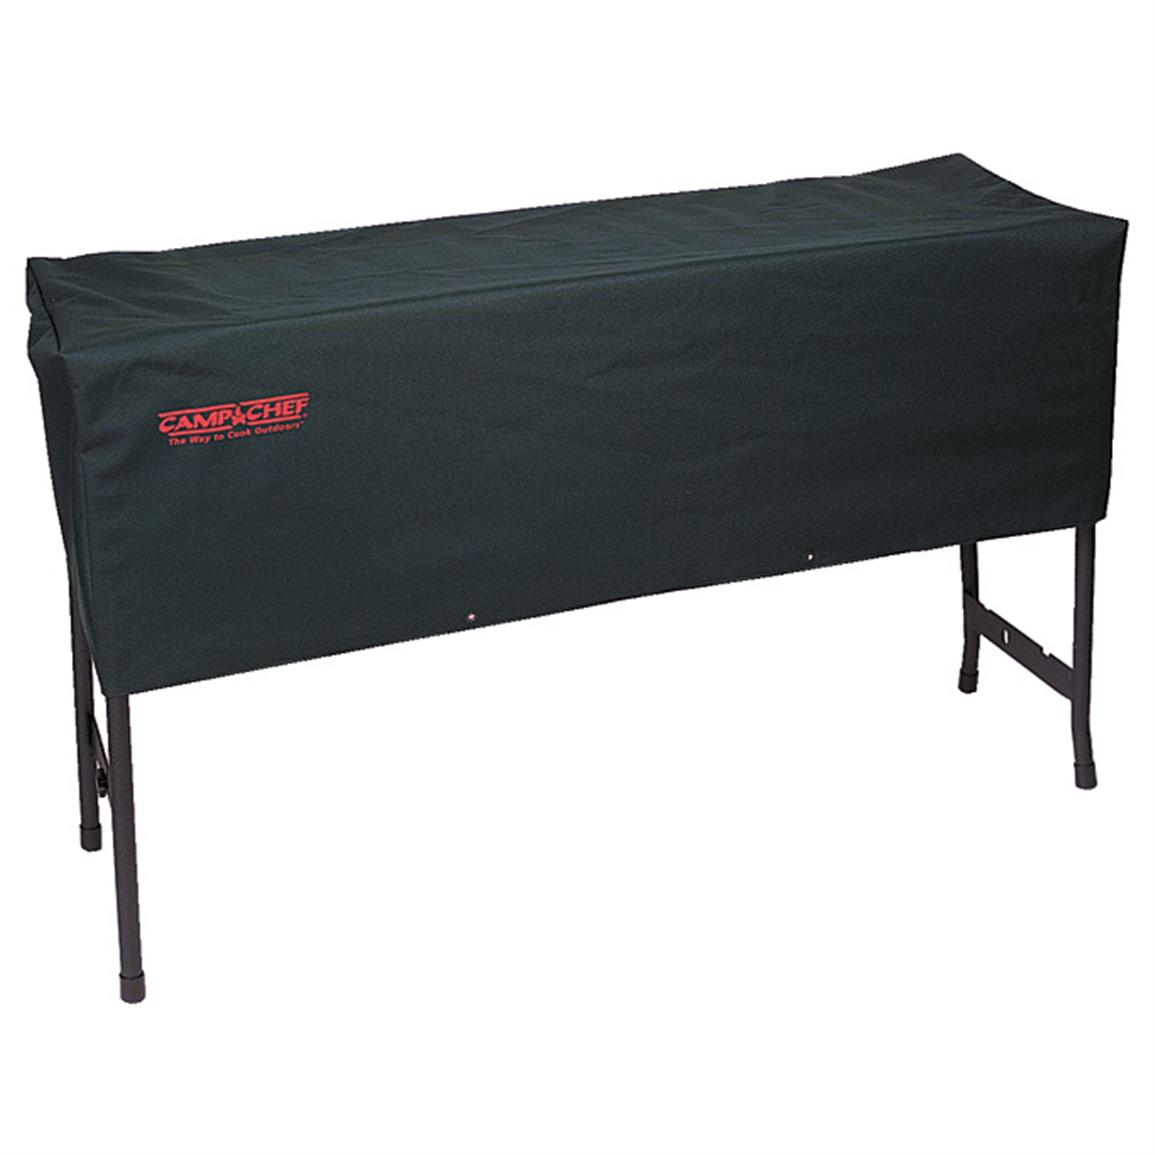 Camp Chef Patio Cover for 2-Burner Propane Stove